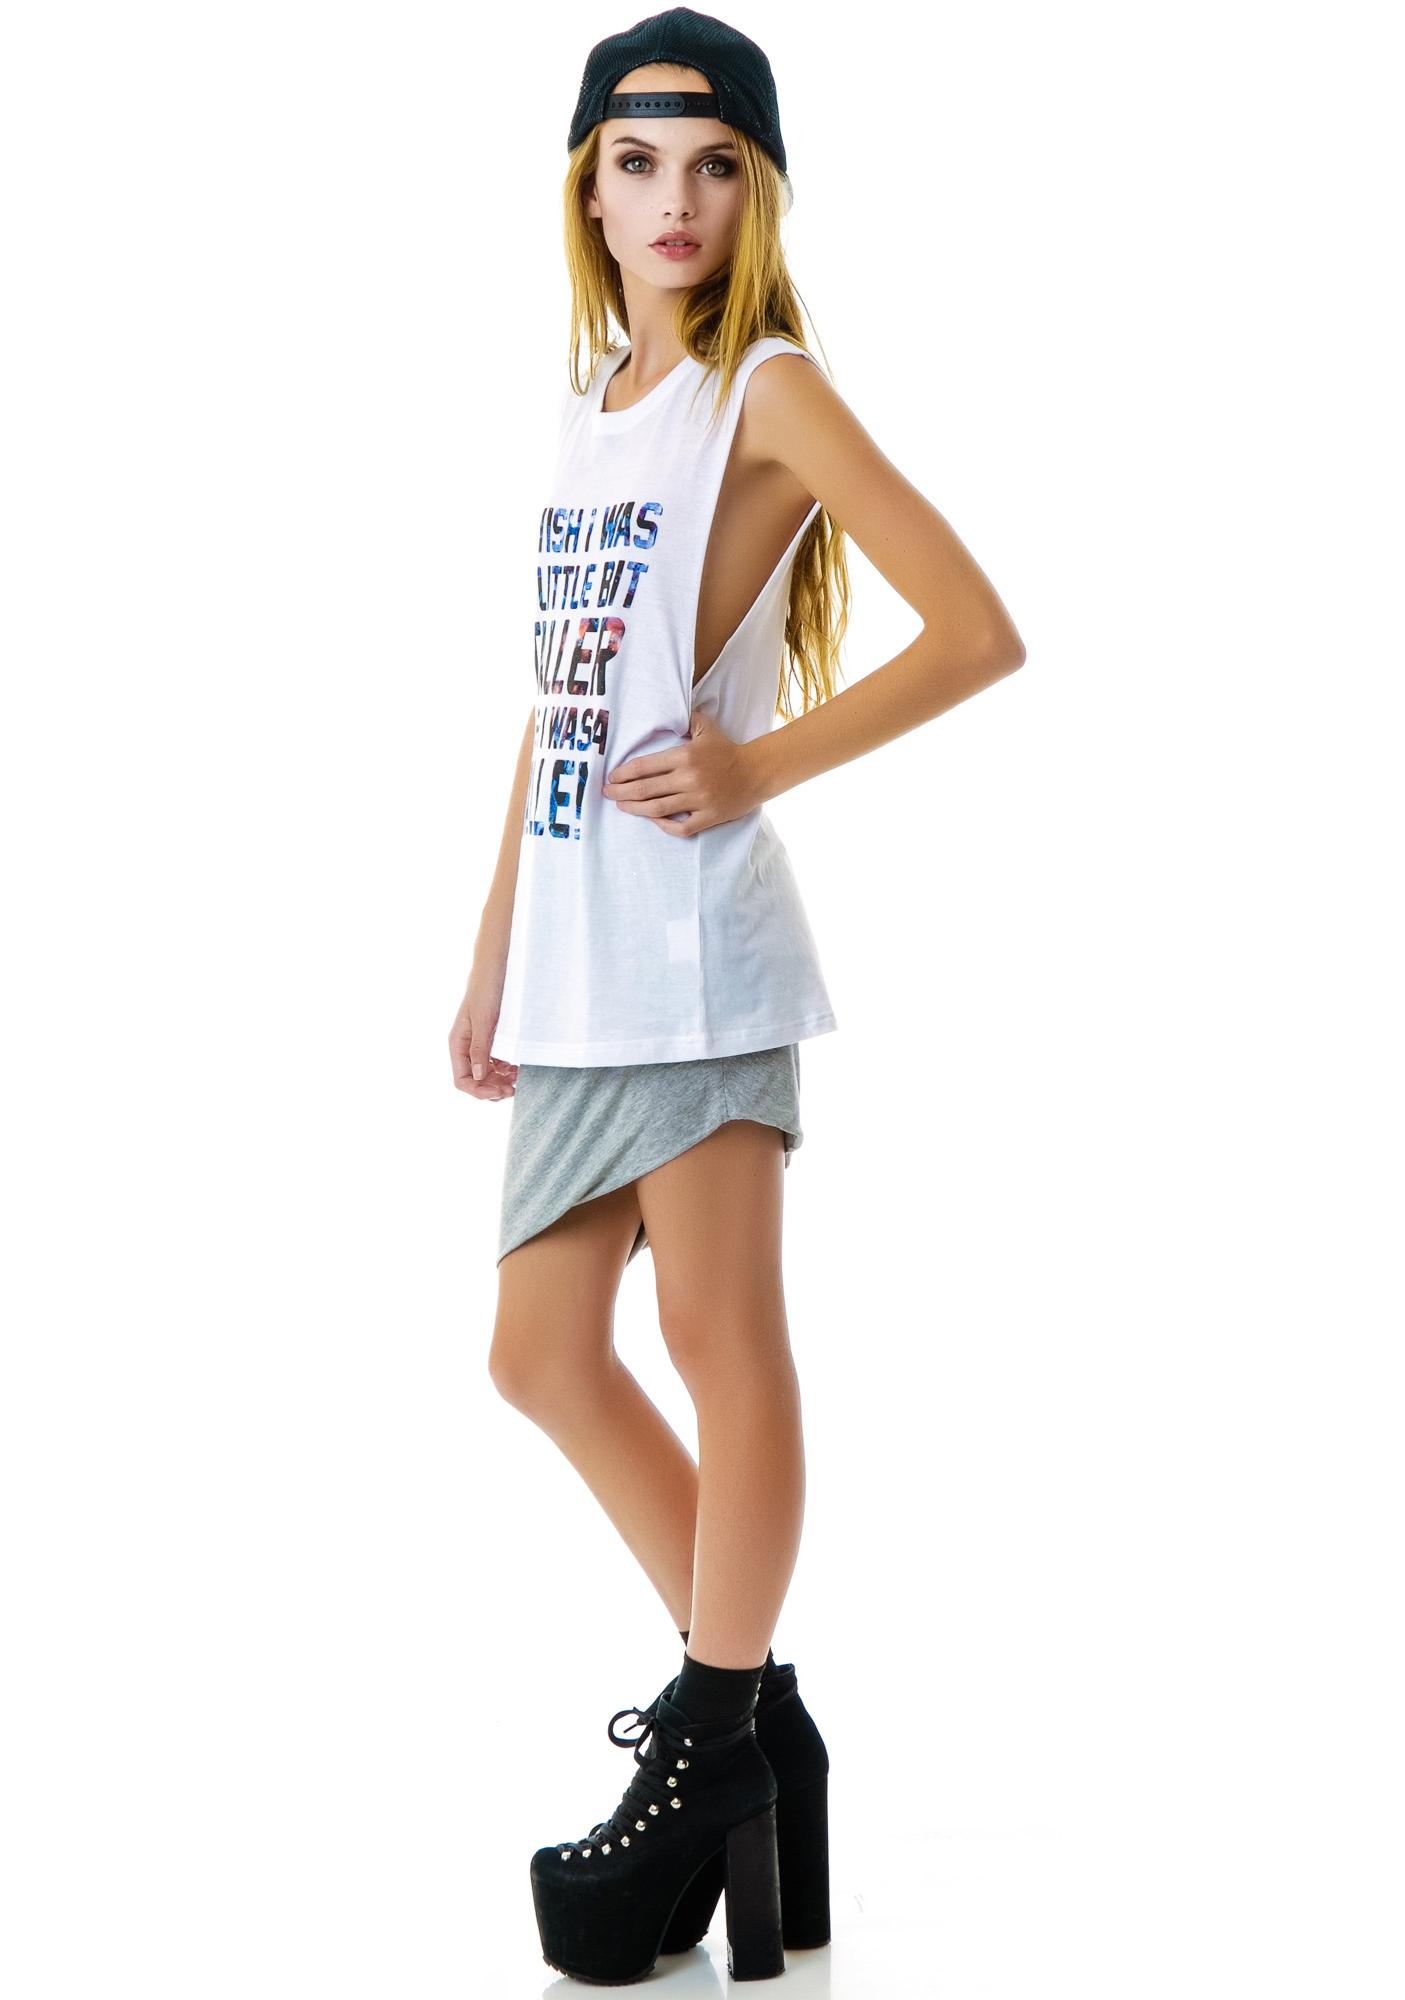 Stylestalker Little Bit Taller Sleeveless Tee